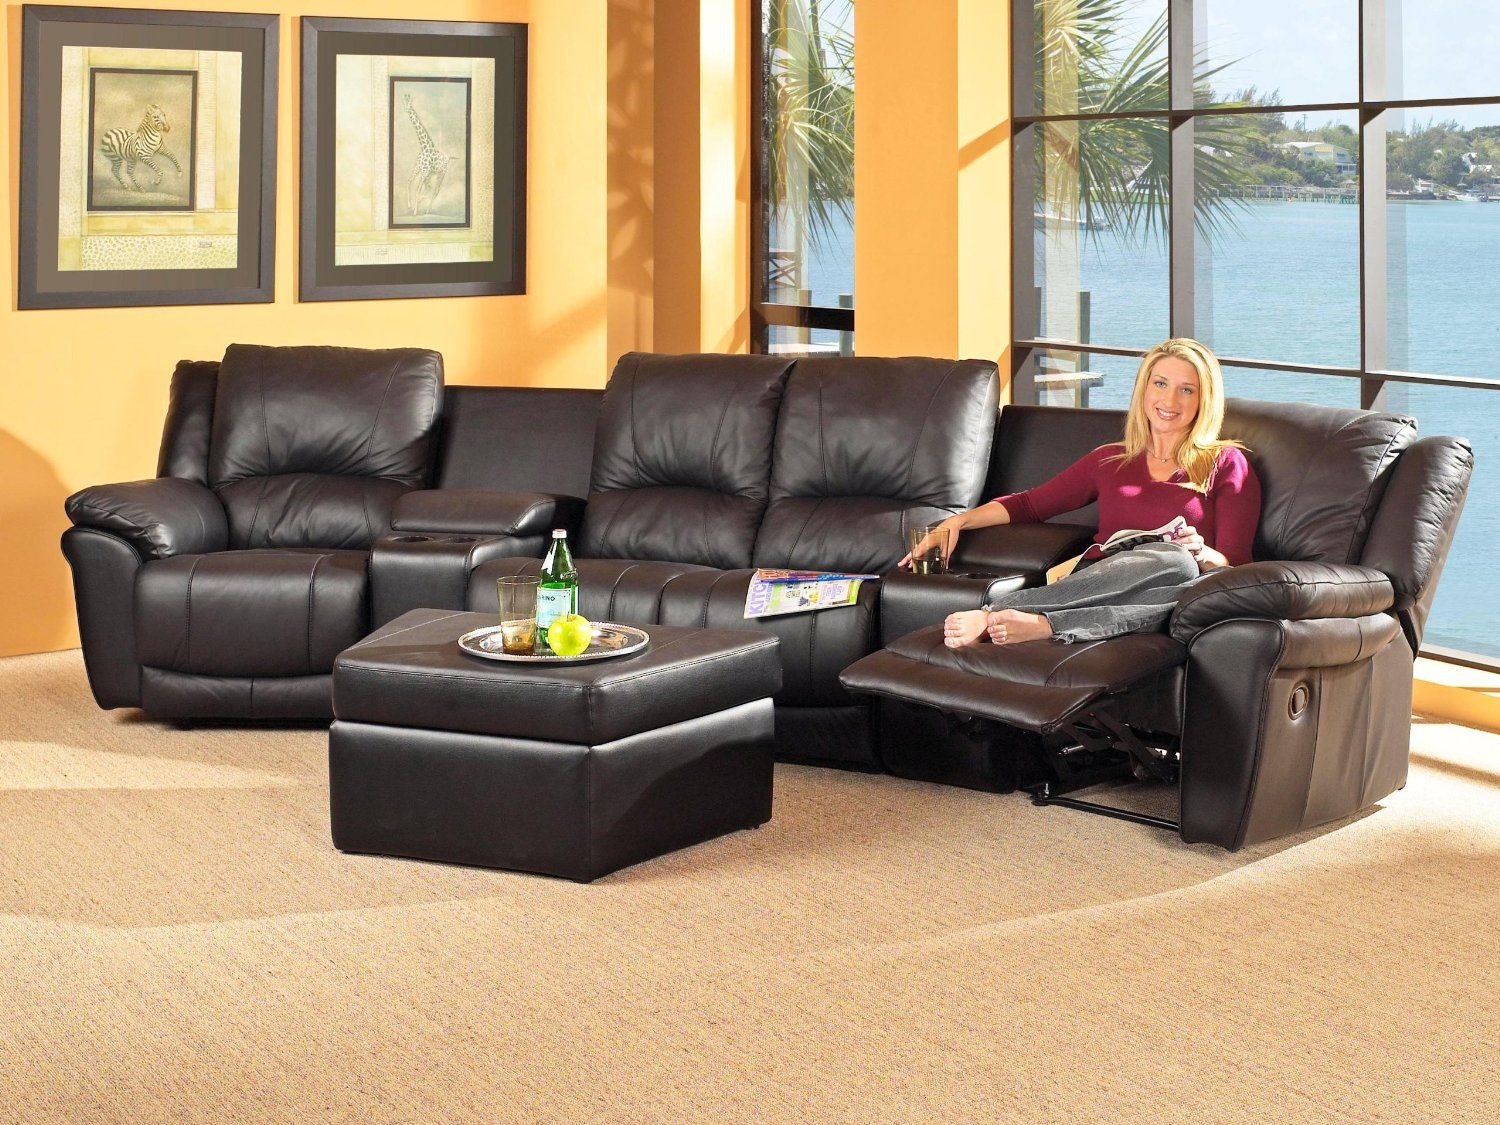 Buy Sofa Small Sectional Sofa Sofas For Small Spaces Reclining Sectional Small Sectional Sofa